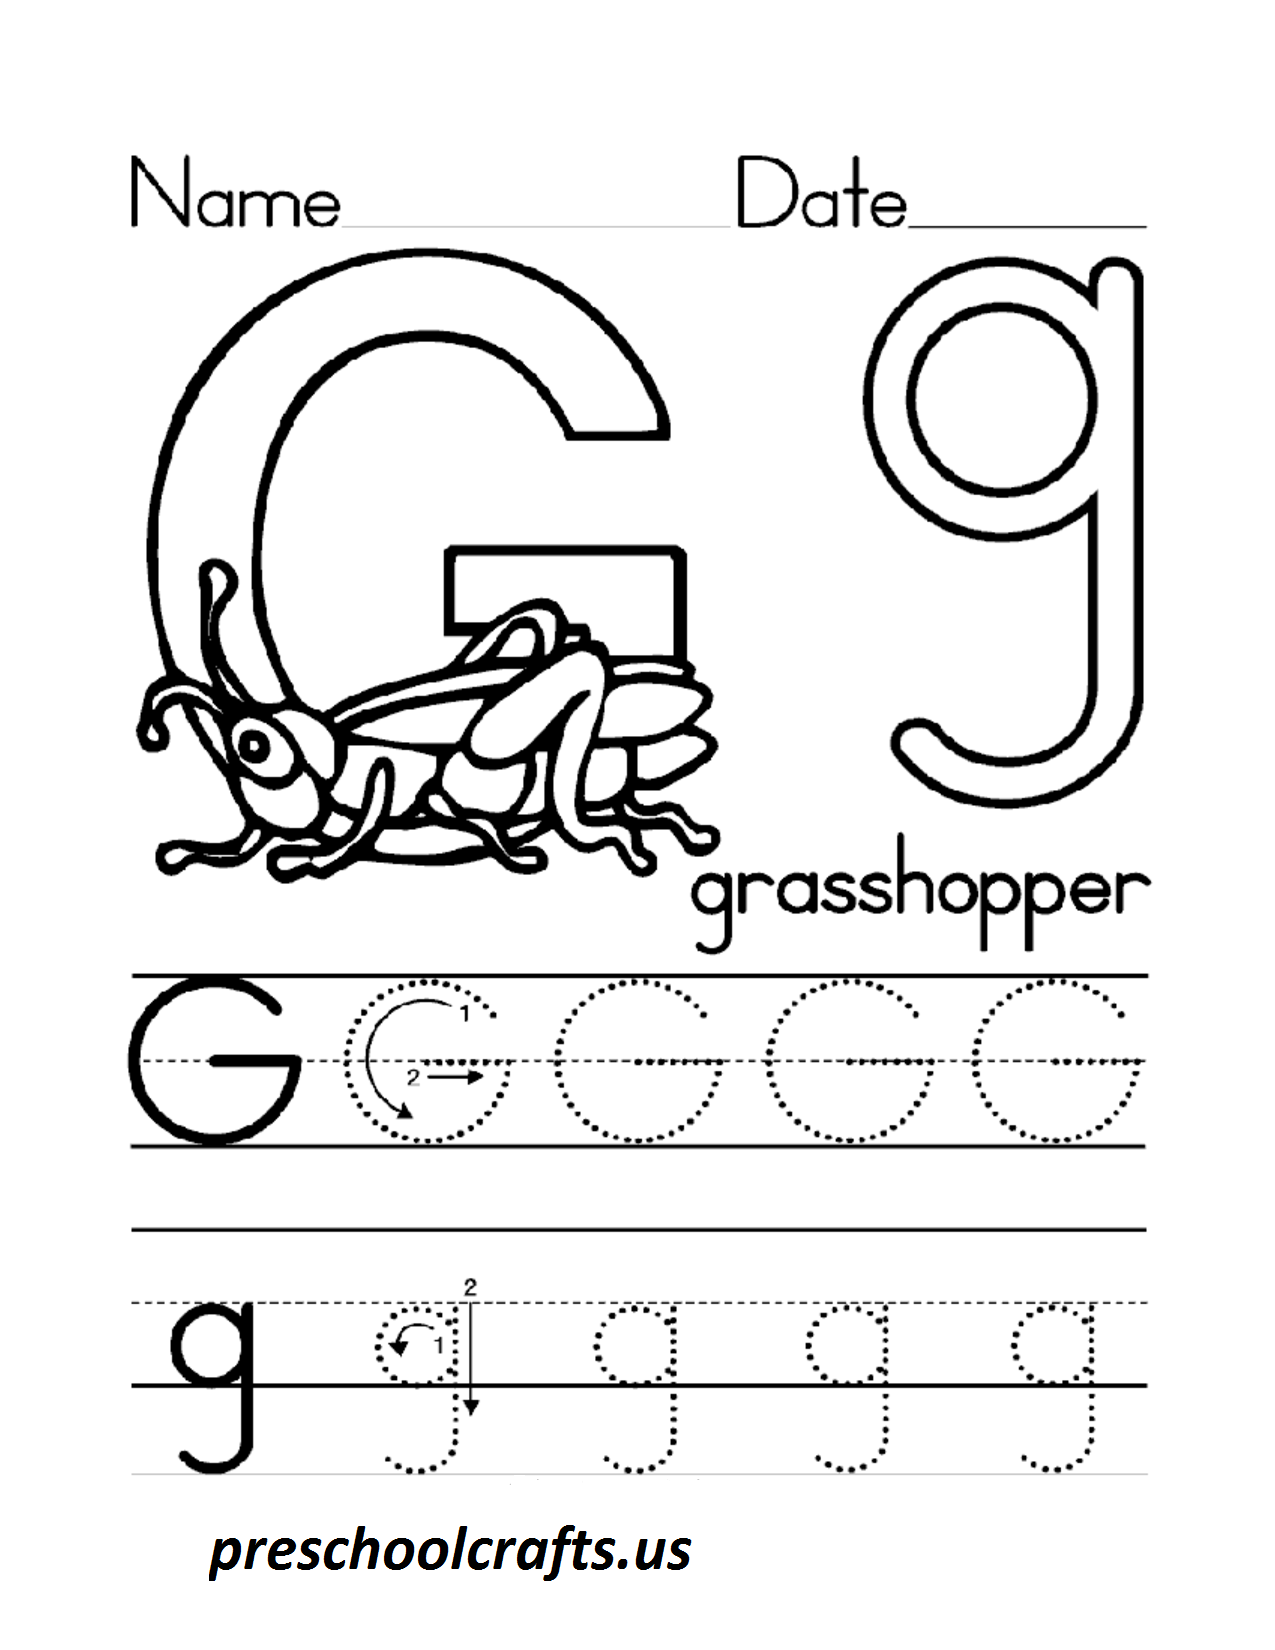 Worksheets Letter G Worksheets letter g worksheets for preschool free library download w ksheets cr fts